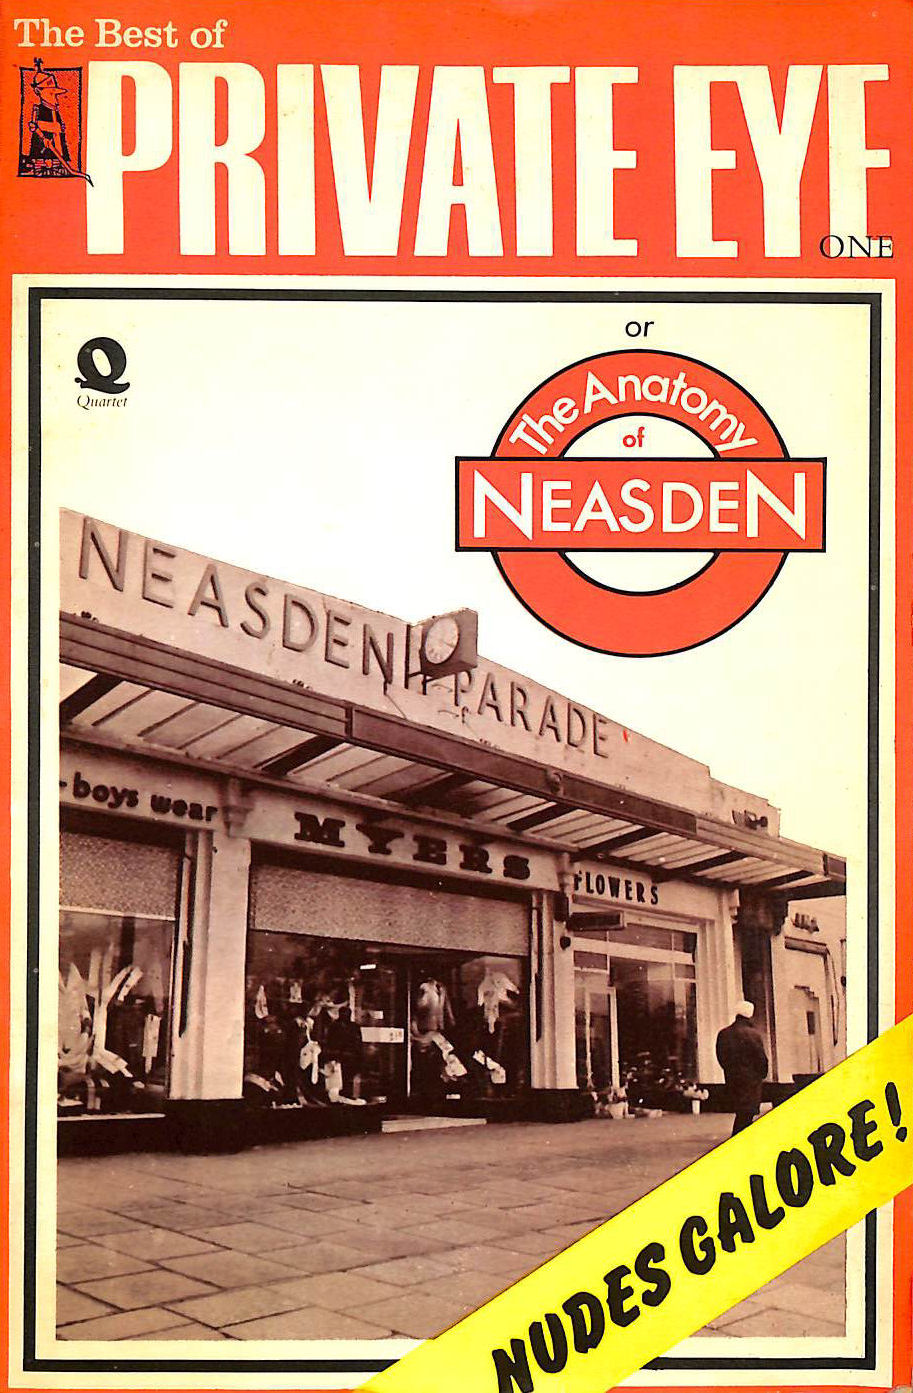 Image for Best of Private Eye 1972: Anatomy of Neasden